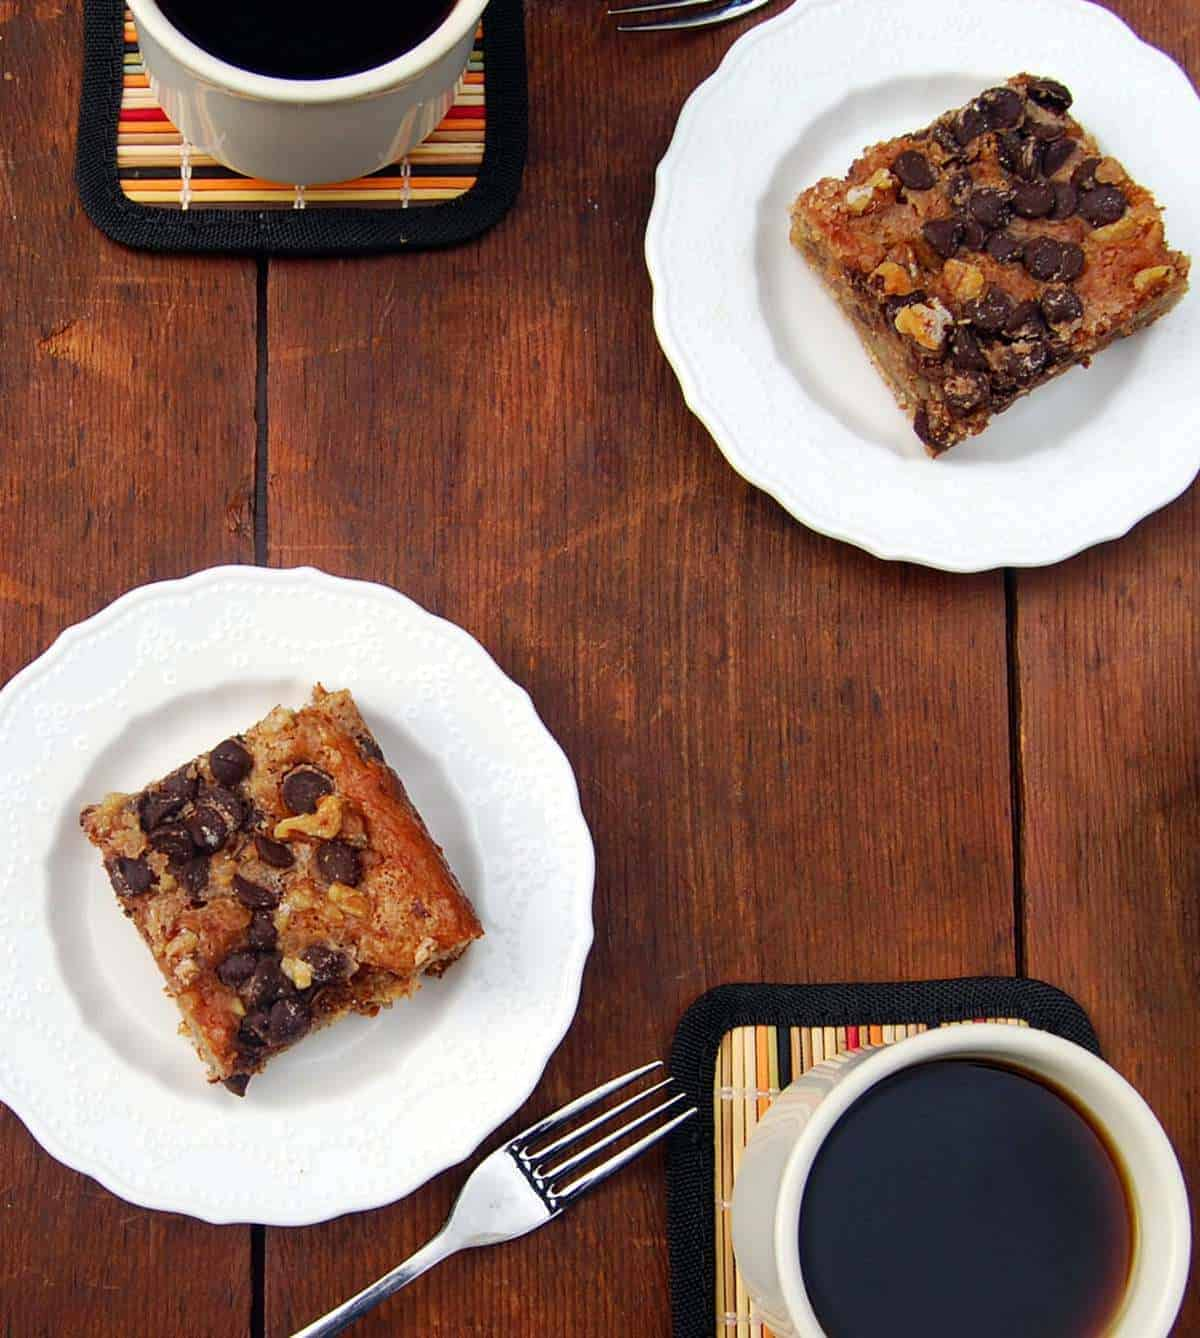 Vegan Banana Coffee Cake squares served on white plates with coffee.